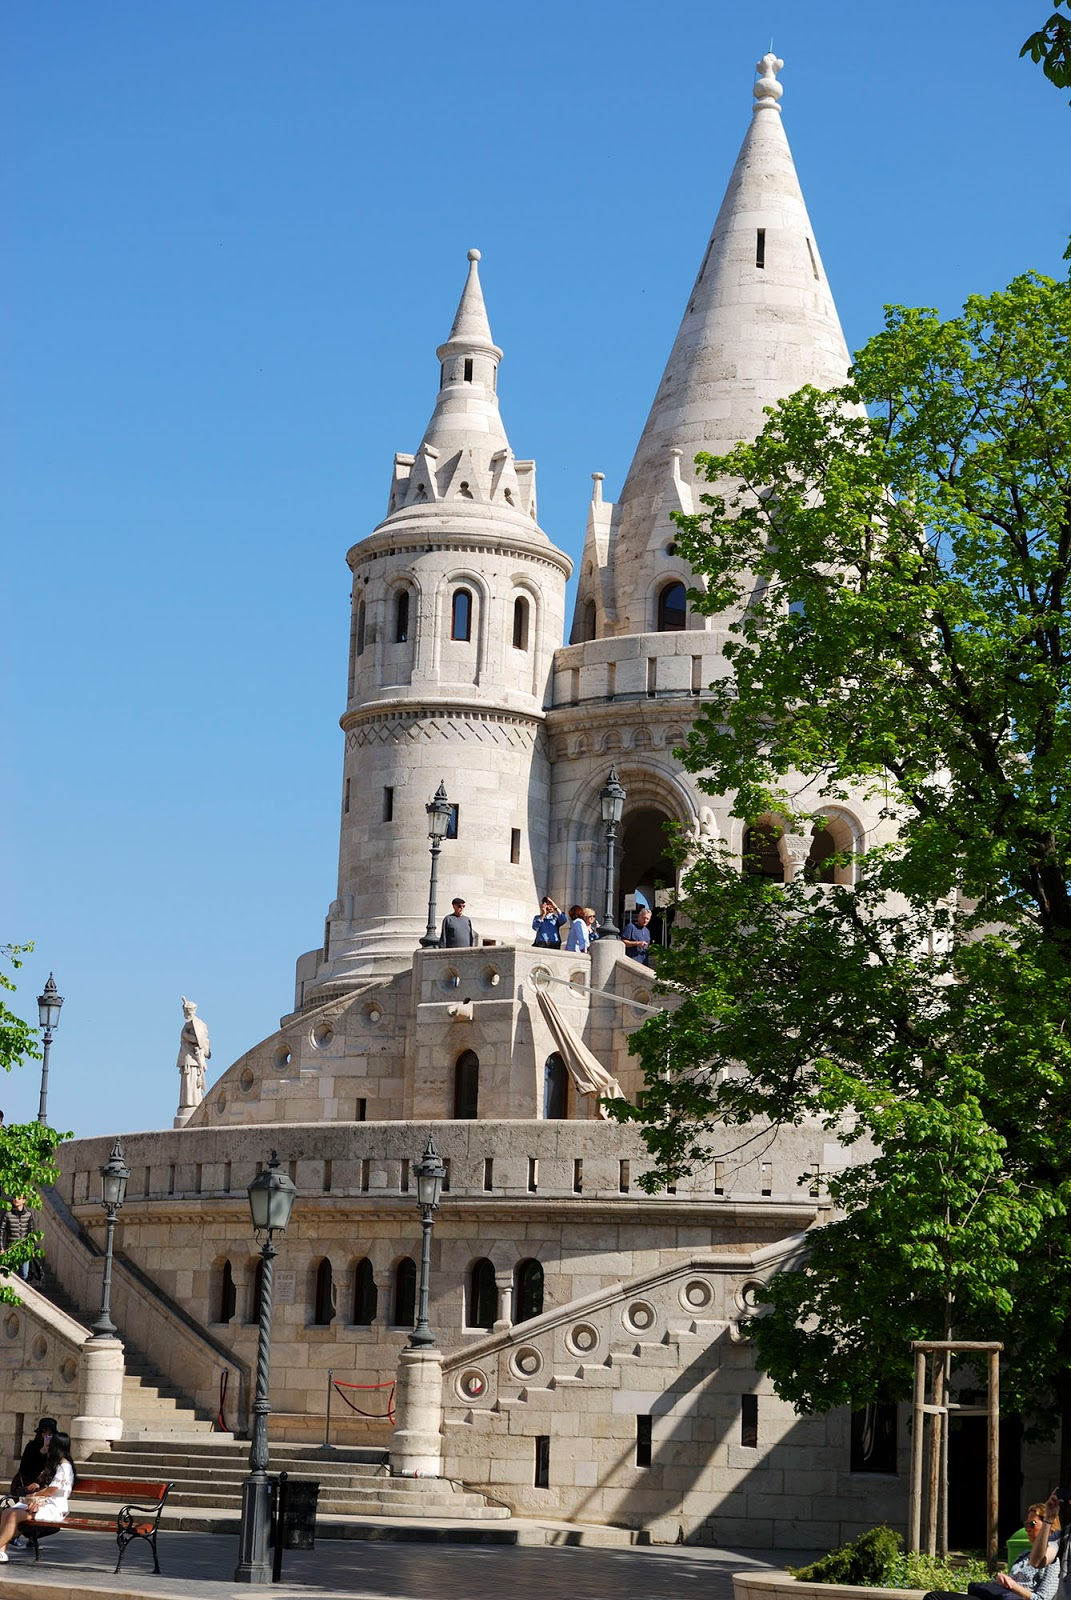 budapest guide itinerary instagram worthy spot sights landmarks hungary fisherman's bastion fairy tale tower